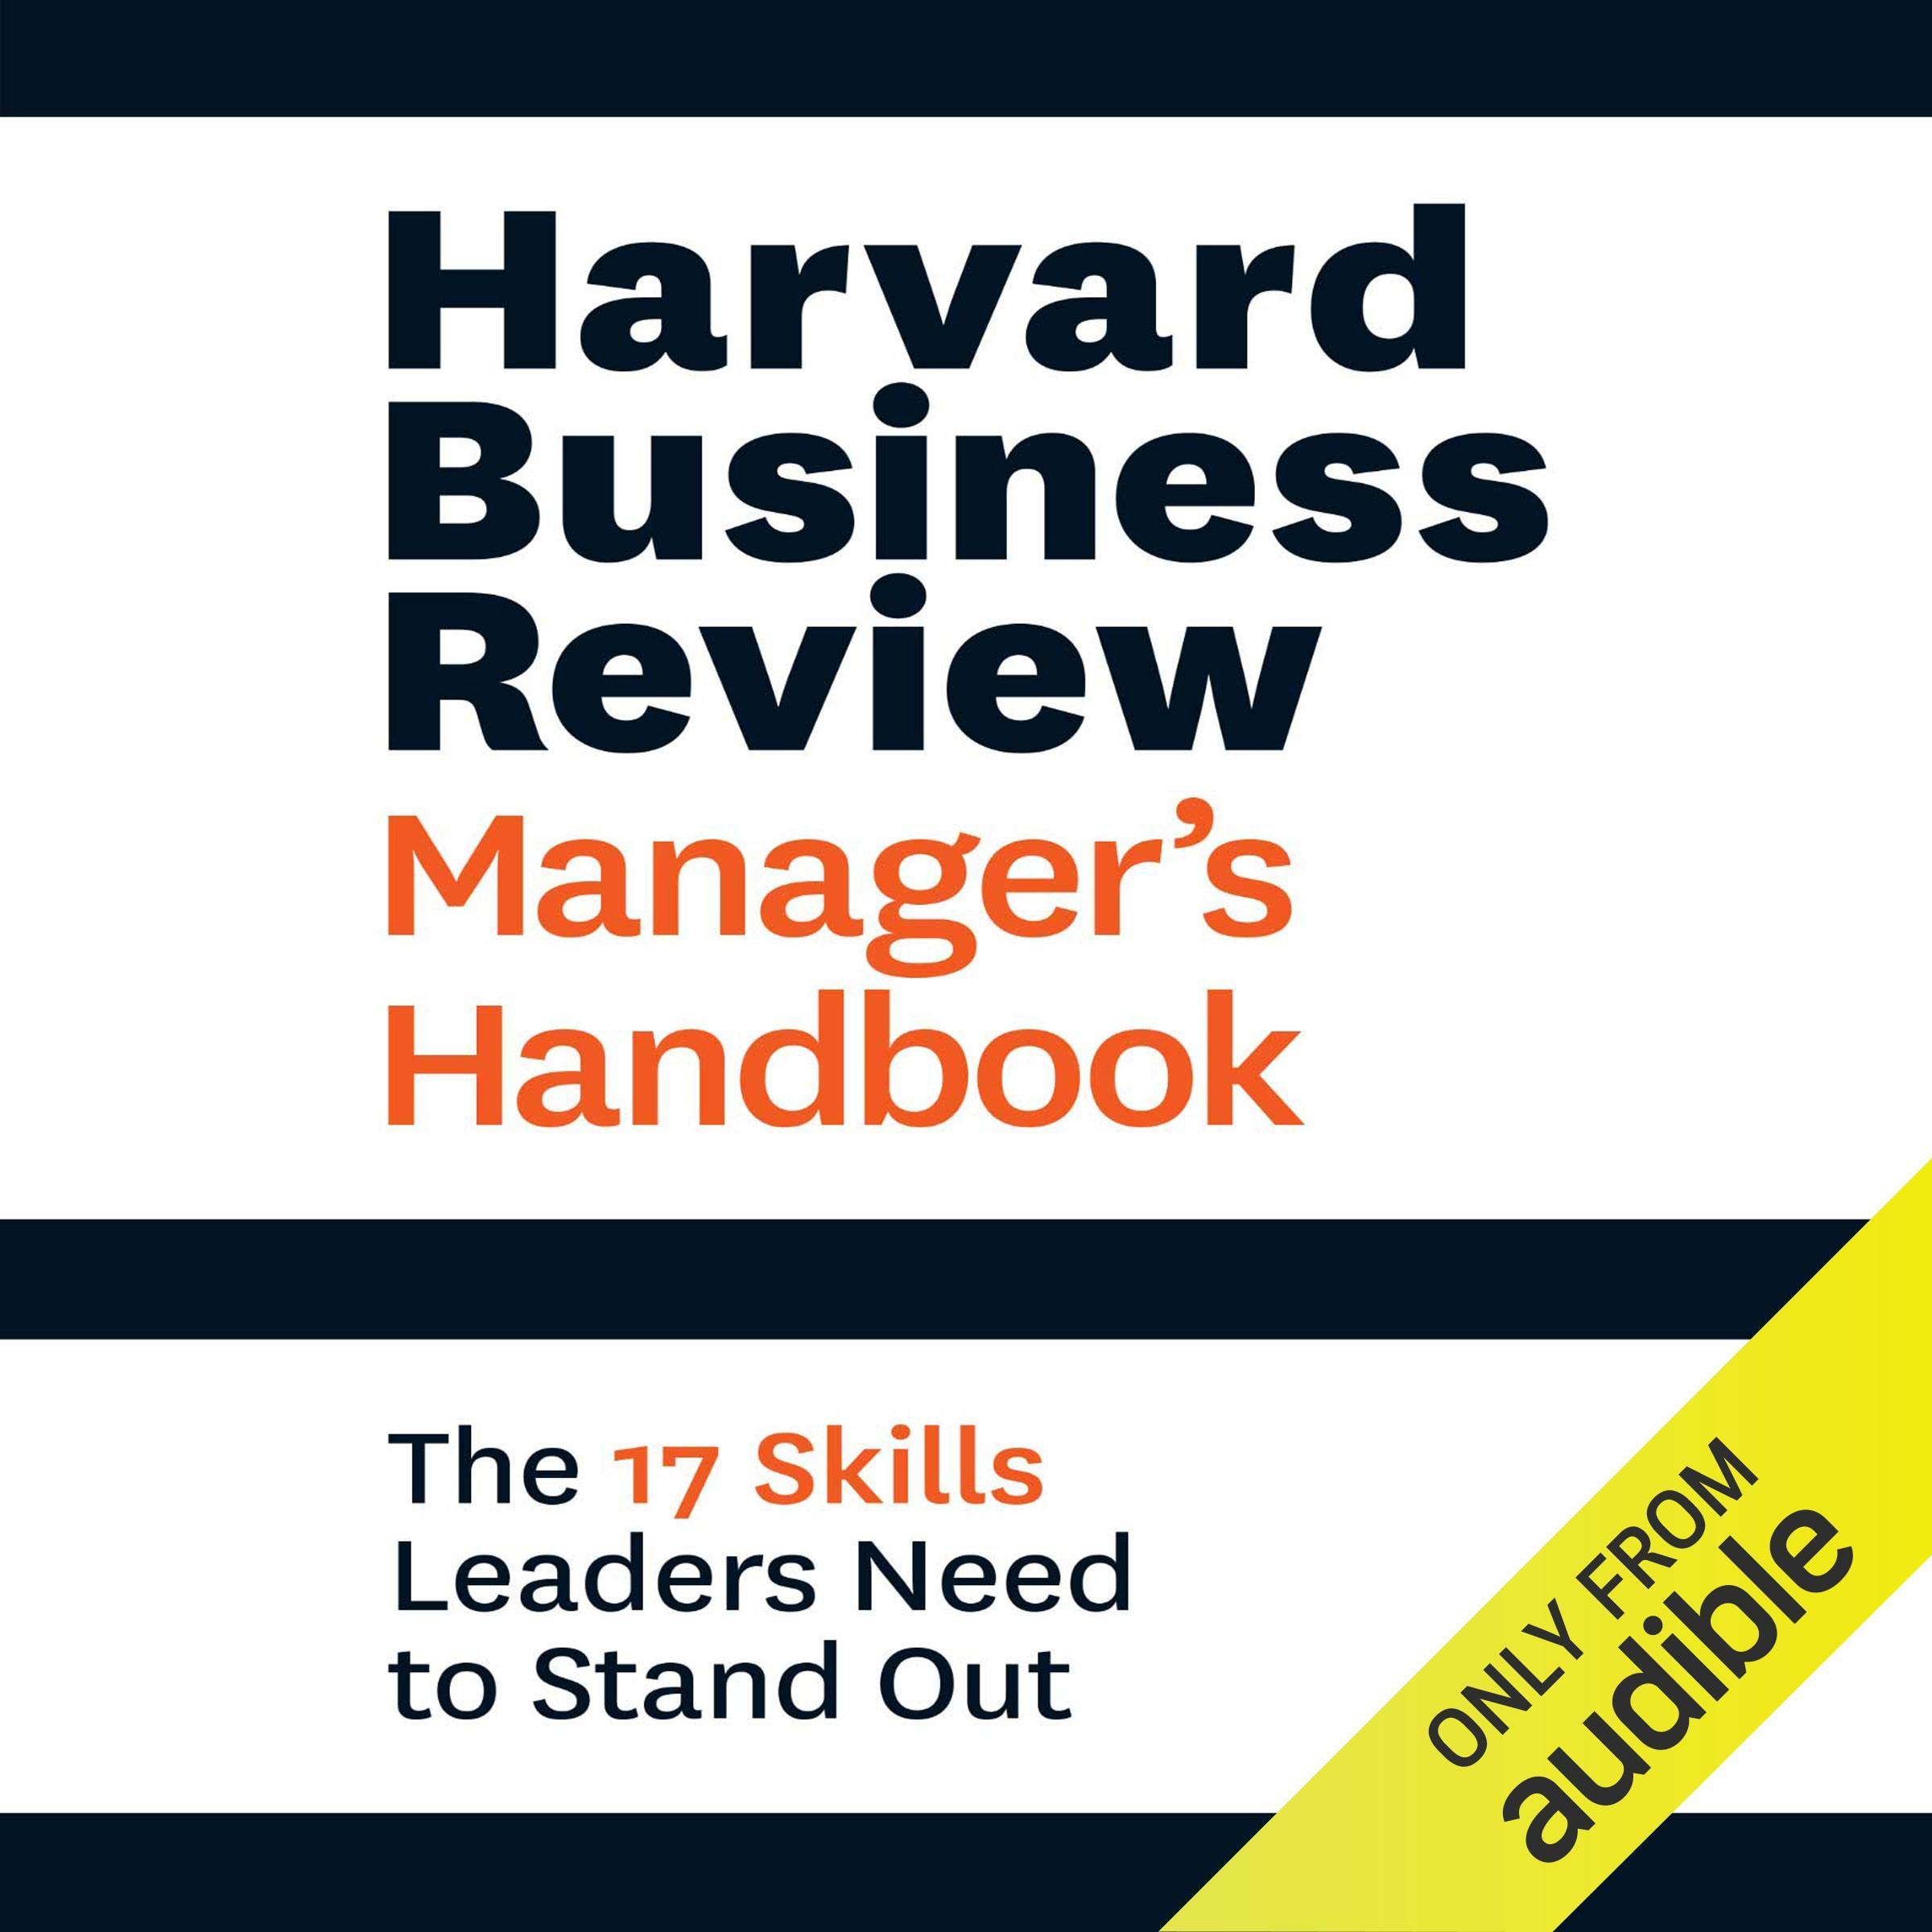 Harvard Business Review Manager's Handbook  The 17 Skills Leaders Need To Stand Out